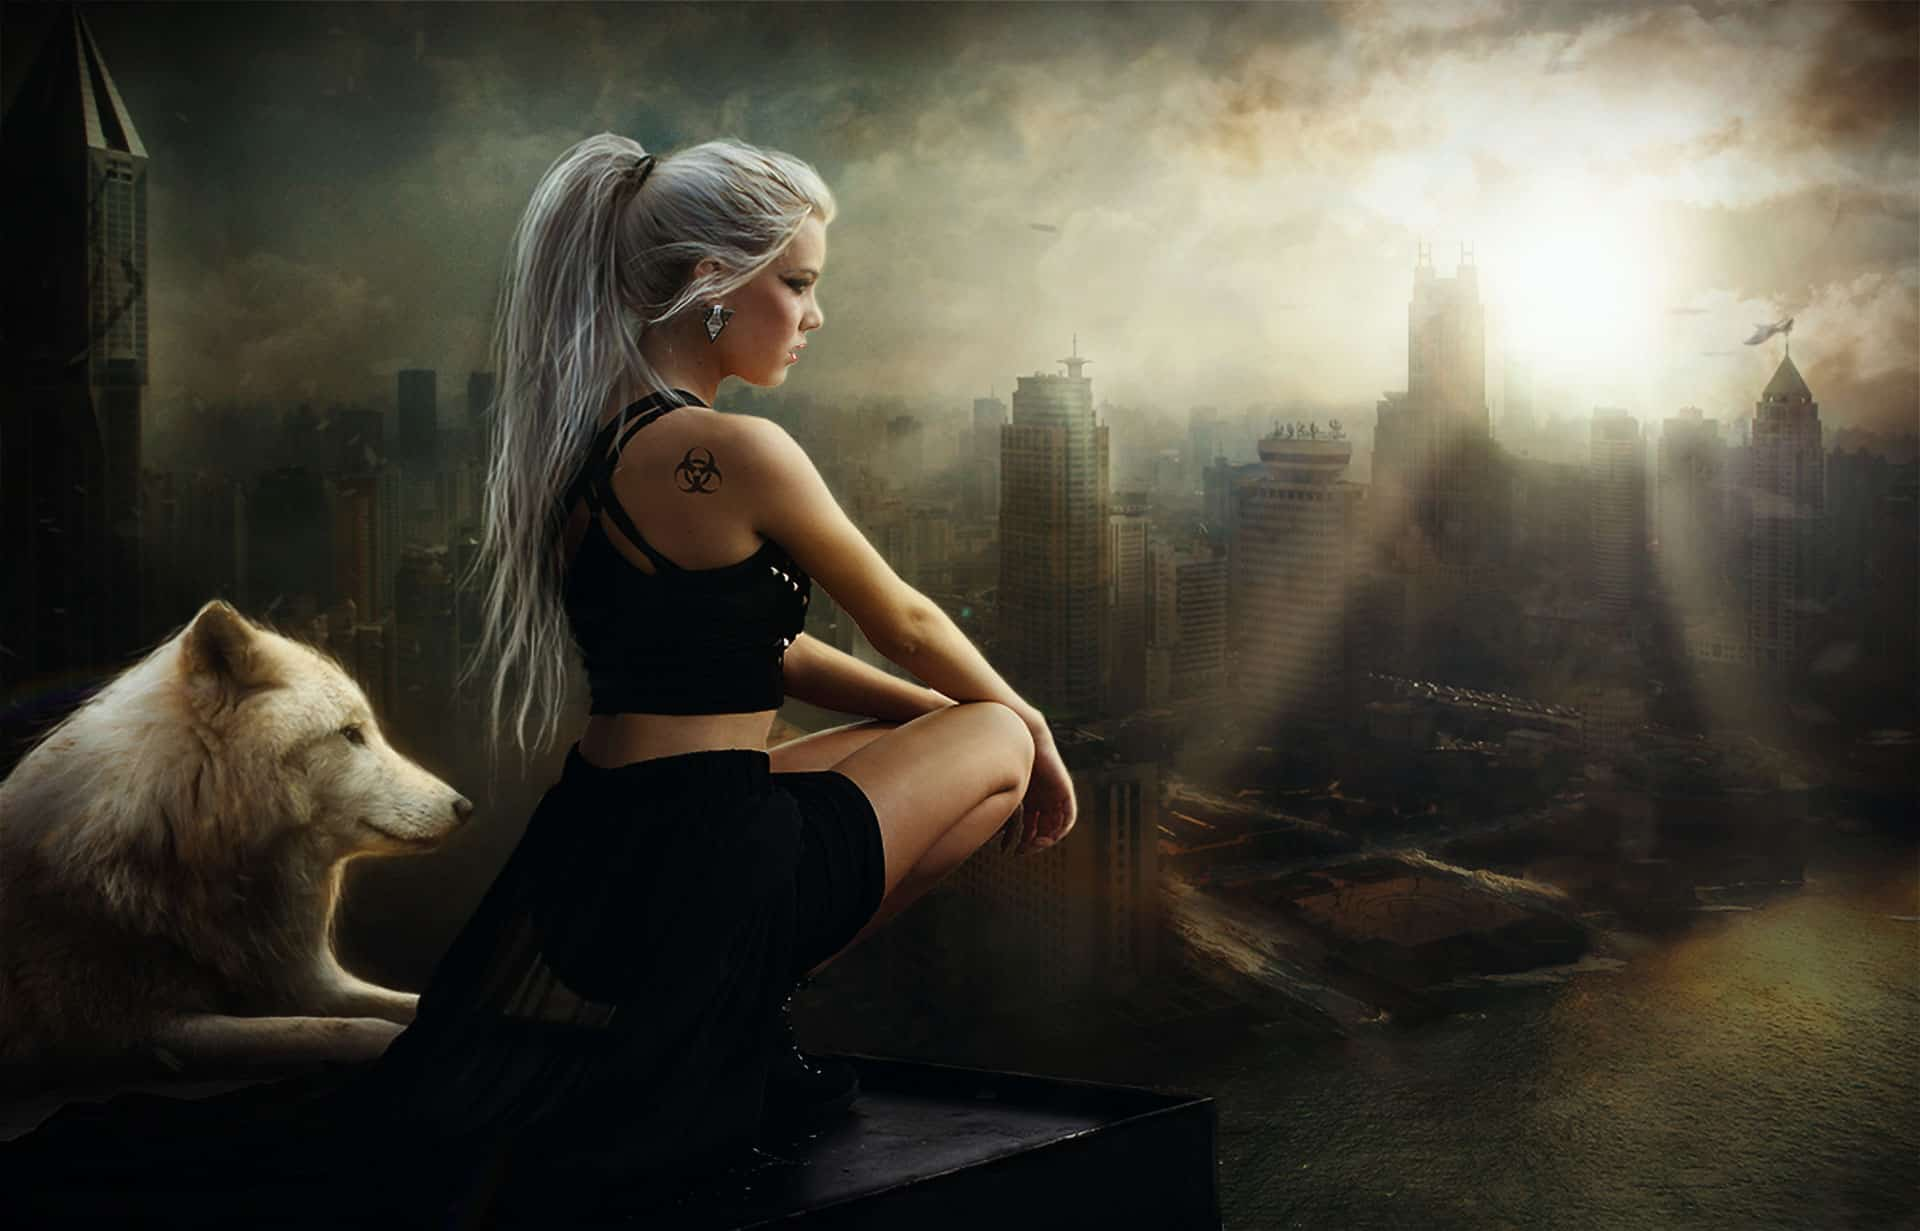 How to Composite a Destroyed City Scene and Retouch Characters in Photoshop